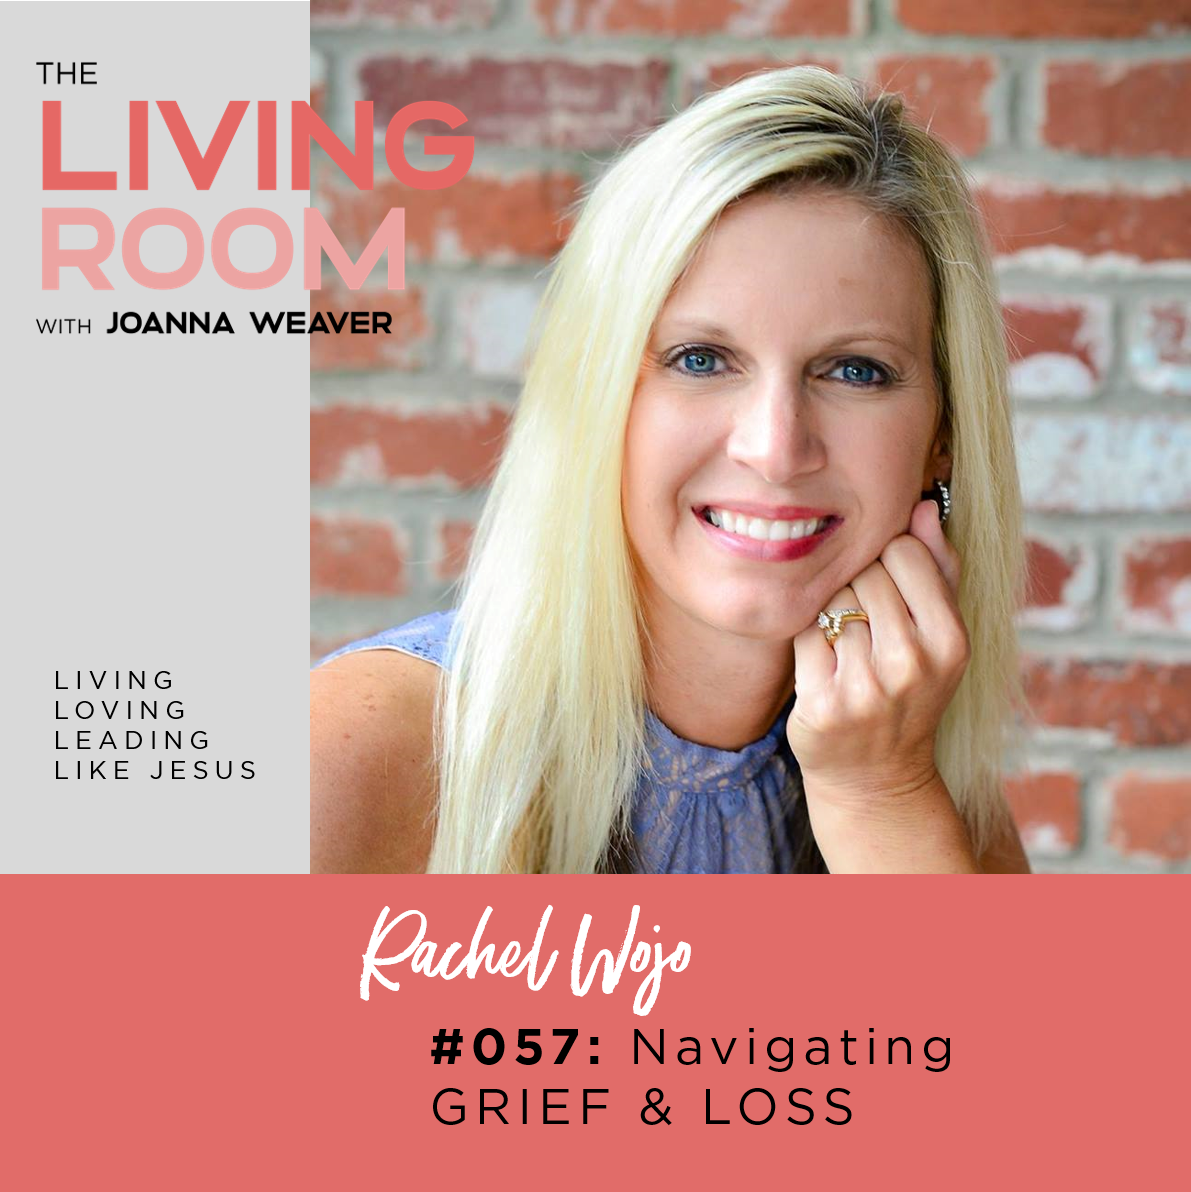 TLR 057 - Navigating Grief & Loss with Rachel Wojo - The Living Room Podcast